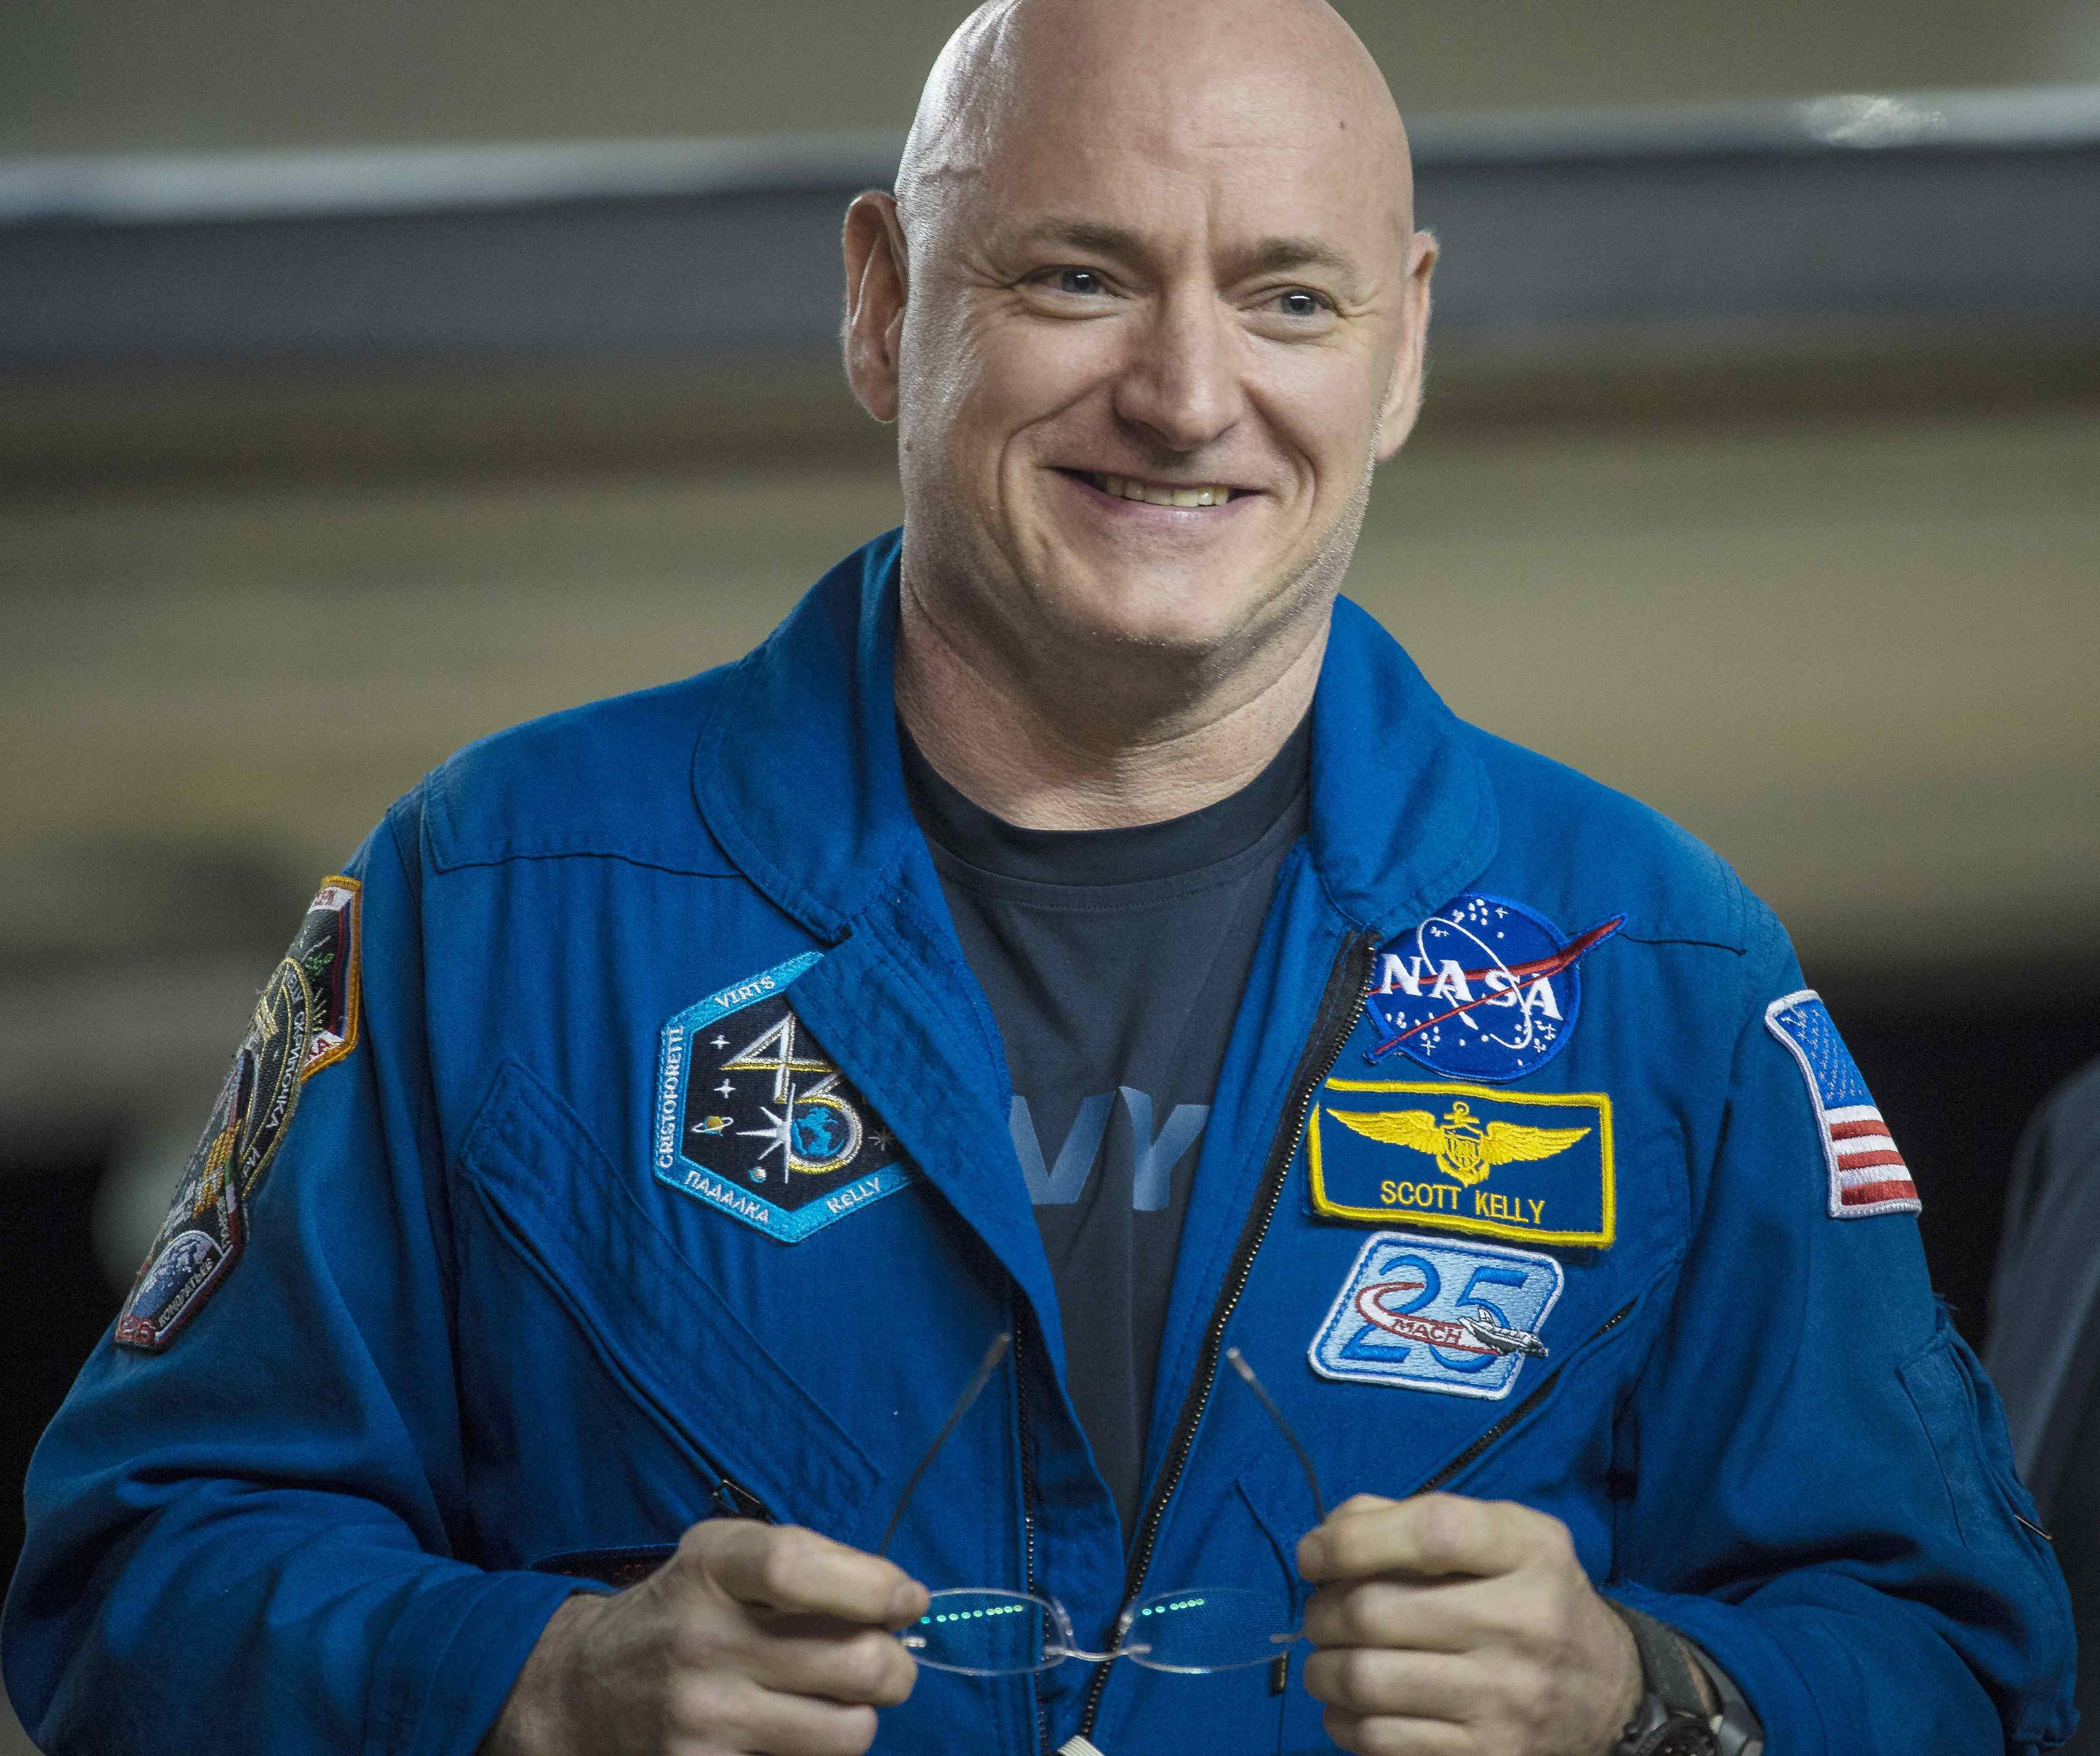 Scott Kelly of NASA is seen after returning to Ellington Field in Houston, Texas on March 3, 2016.